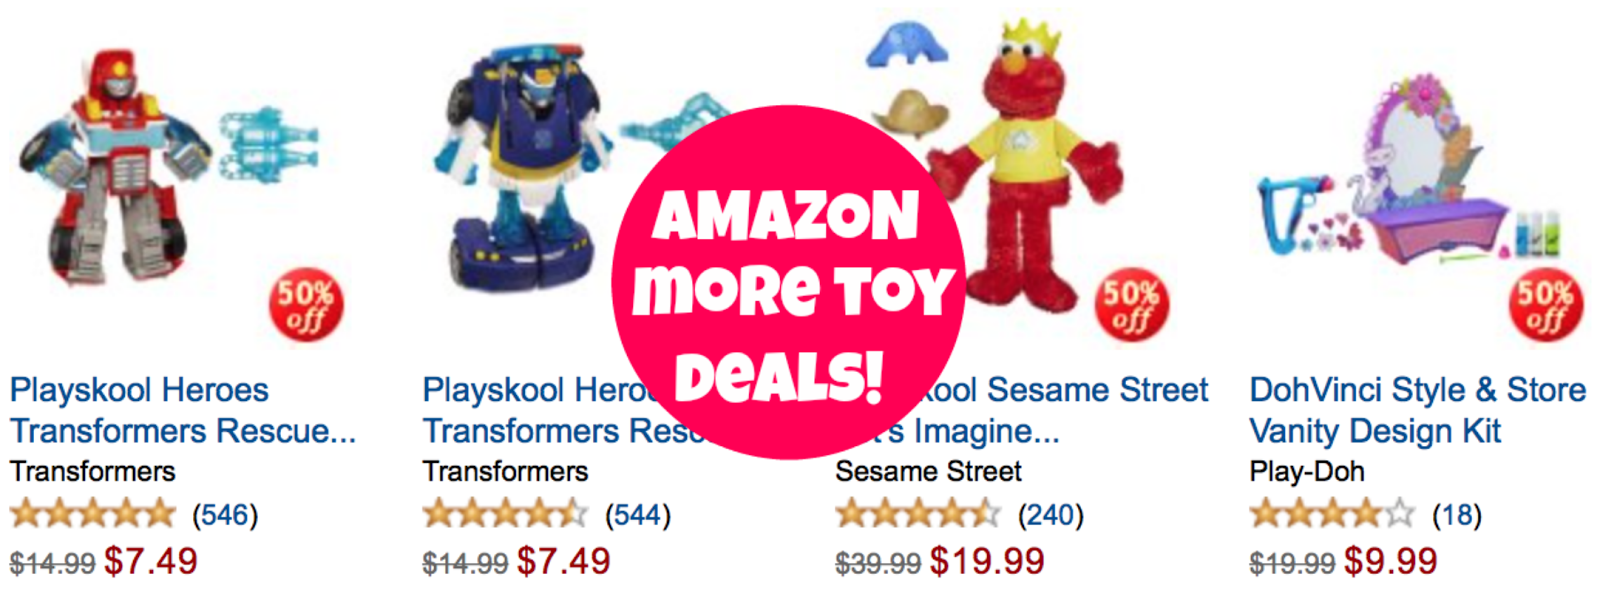 http://www.thebinderladies.com/2014/12/amazon-even-more-toy-deals-skylanders.html#.VH0yZ4fduyM